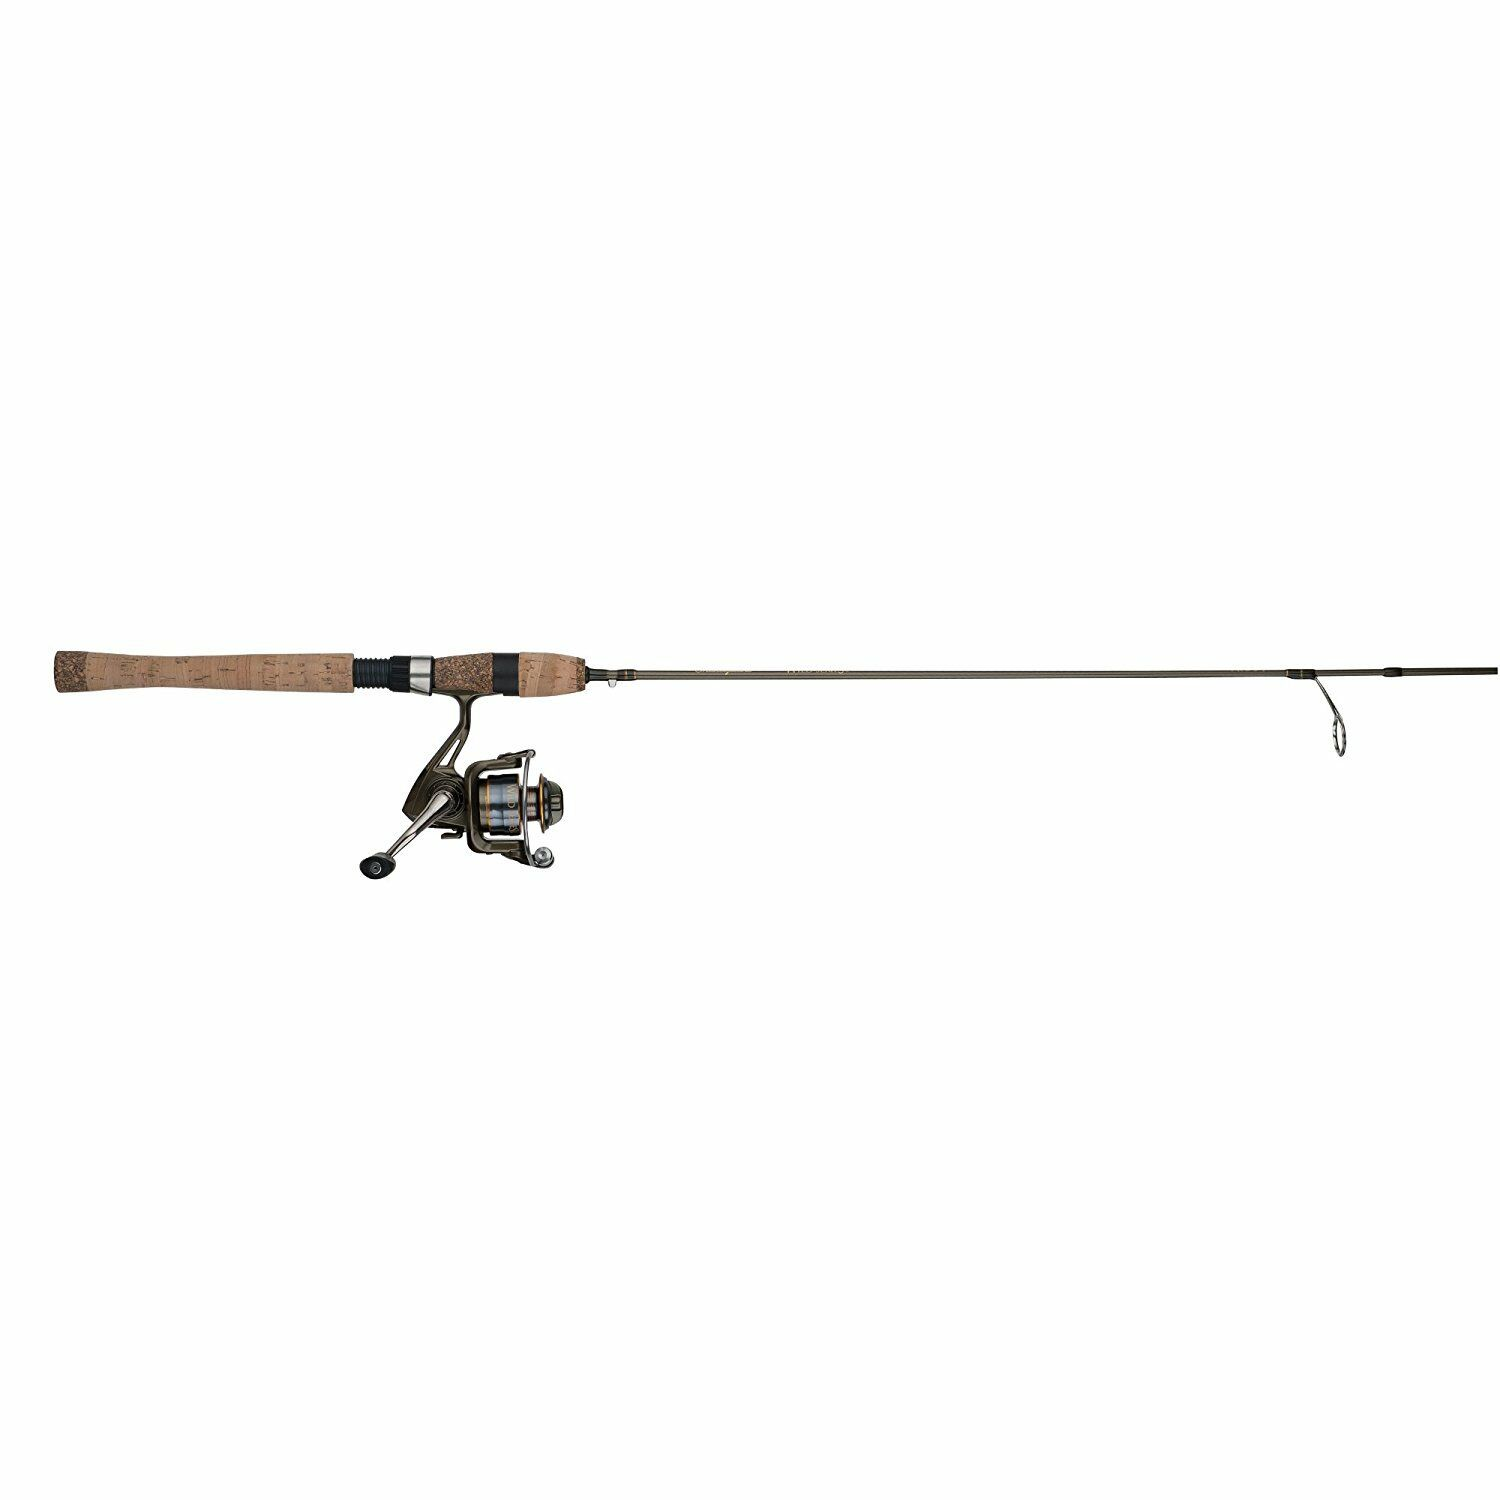 Shakespeare Wild Spinning Rod and Reel Combo 5'6